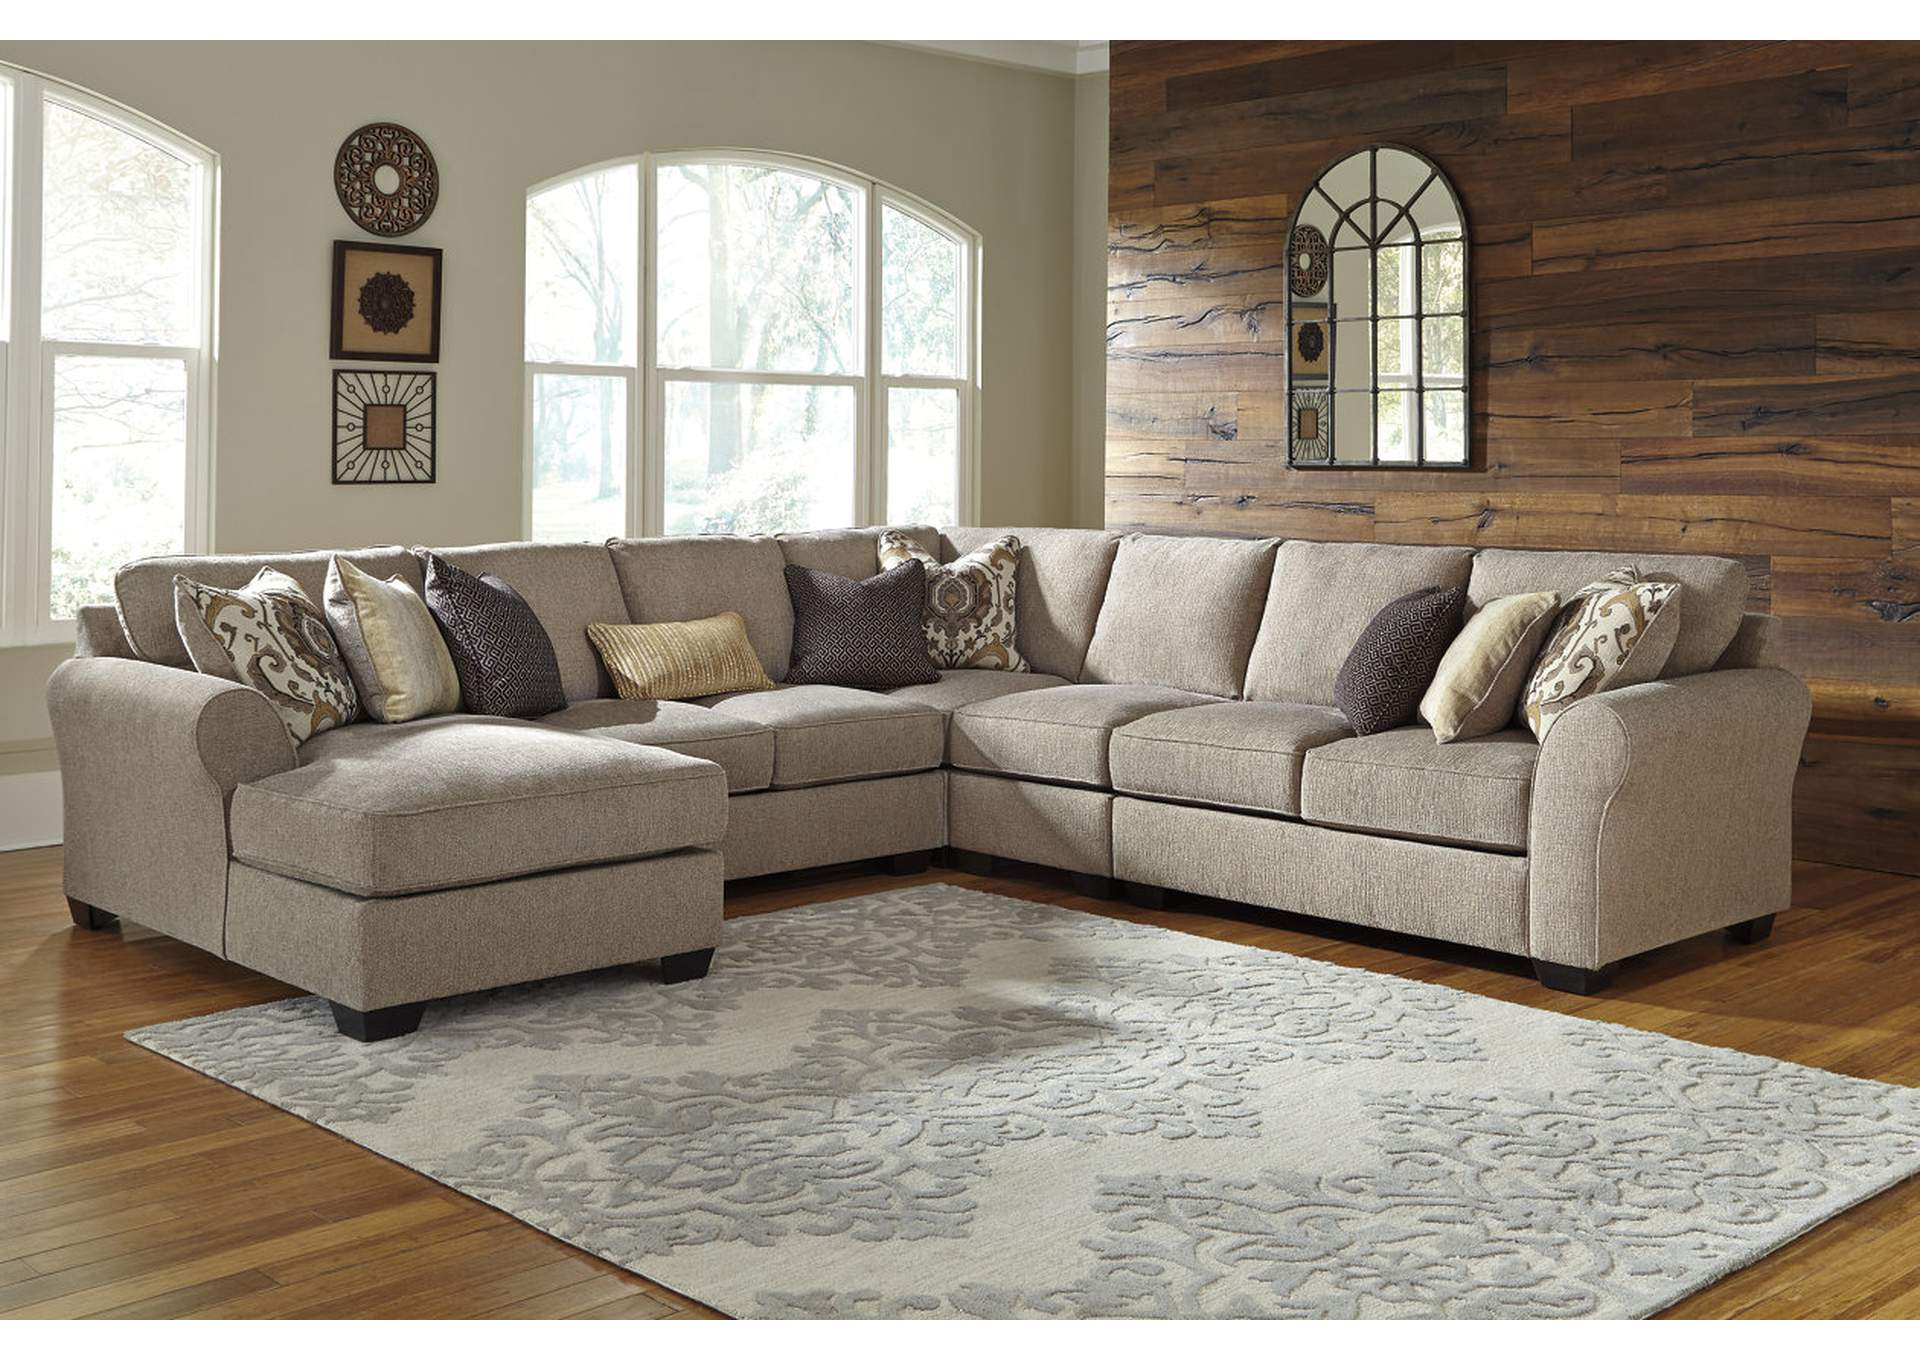 Pantomine Driftwood Extended Sectional w/Left Facing Corner Chaise,ABF Benchcraft